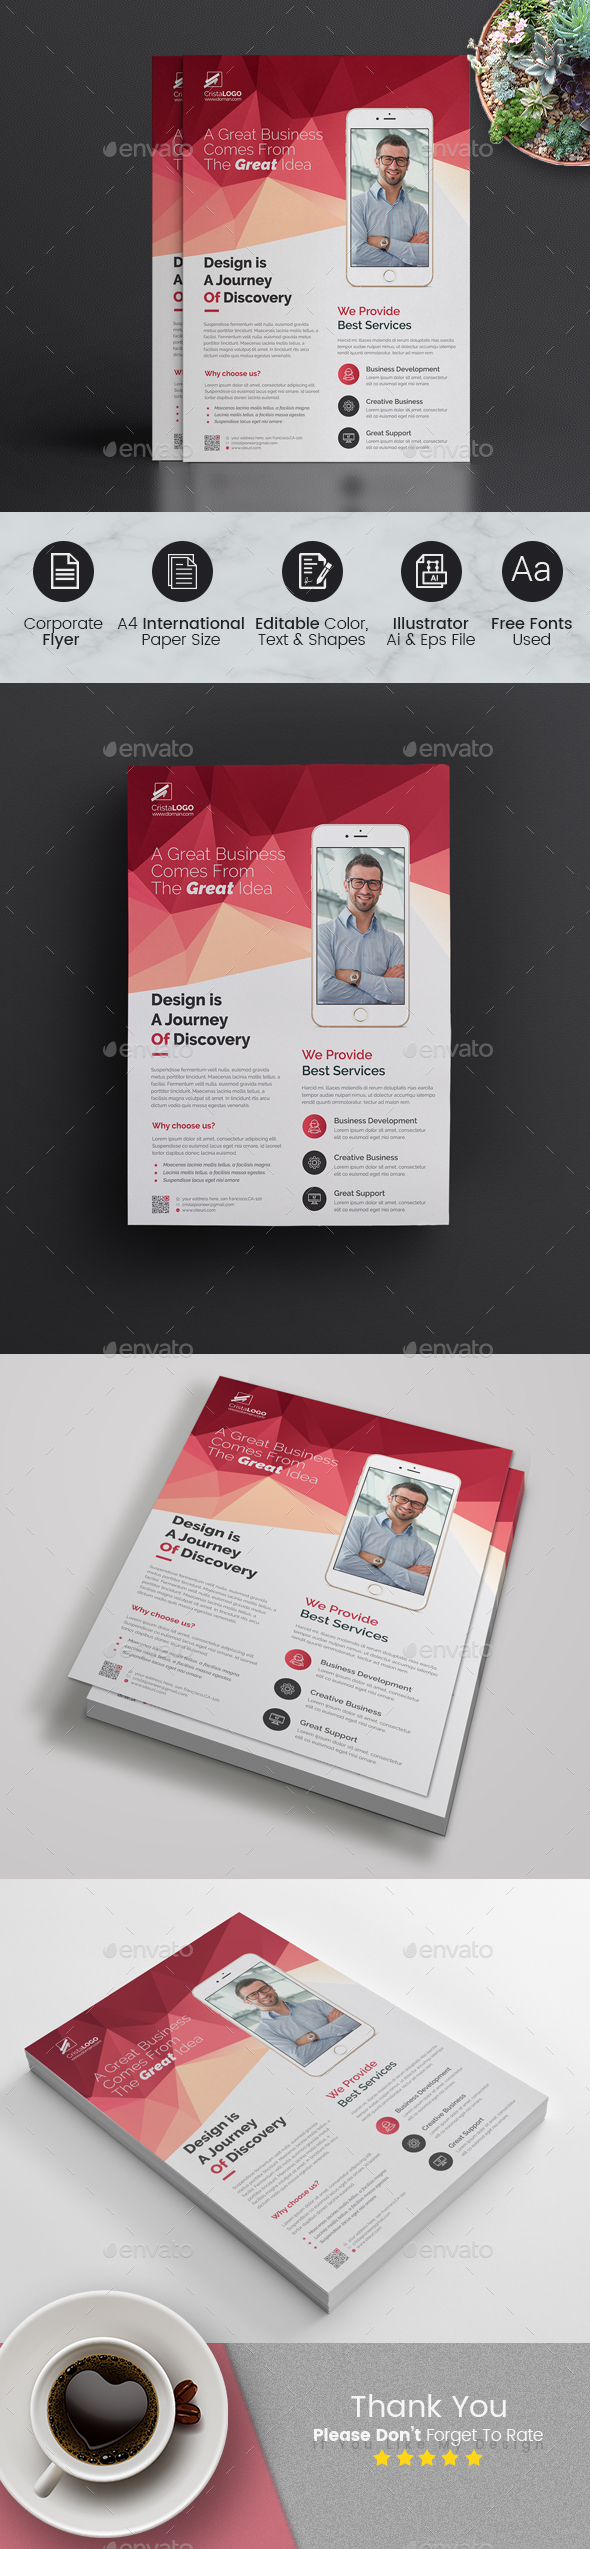 Abstract Flyer - Corporate Flyers